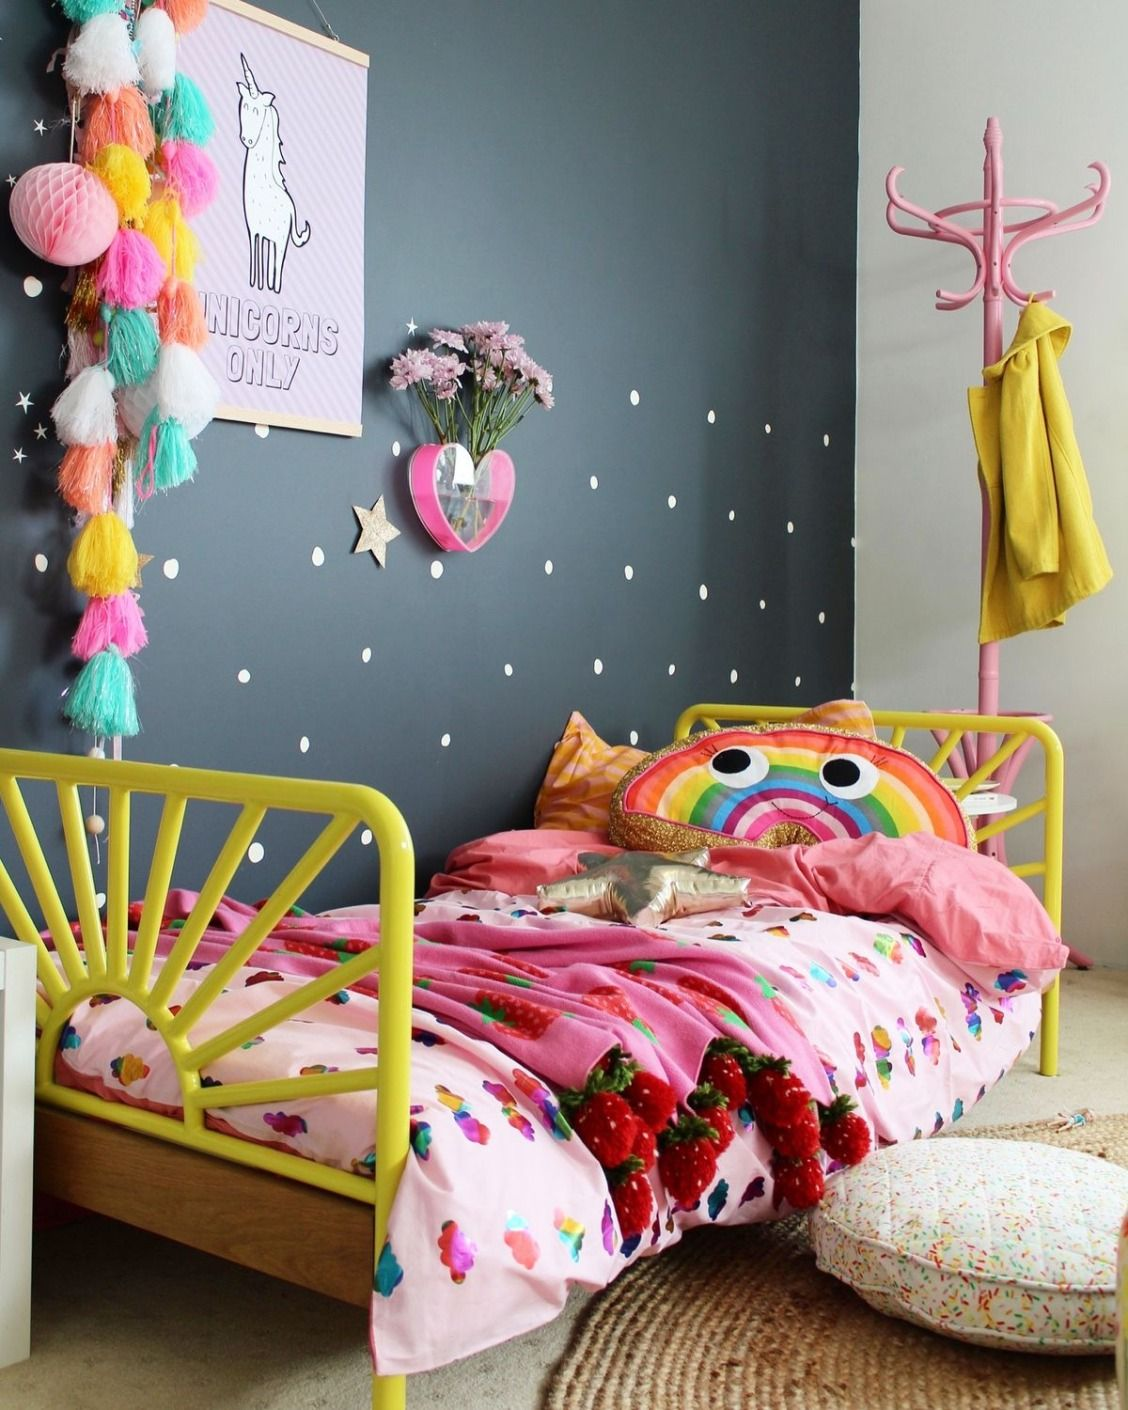 Cloudy With A Chance Of Rainbows Four Cheeky Monkeys Kids Rooms Diy Decorating Toddler Girls Room Kid Room Decor